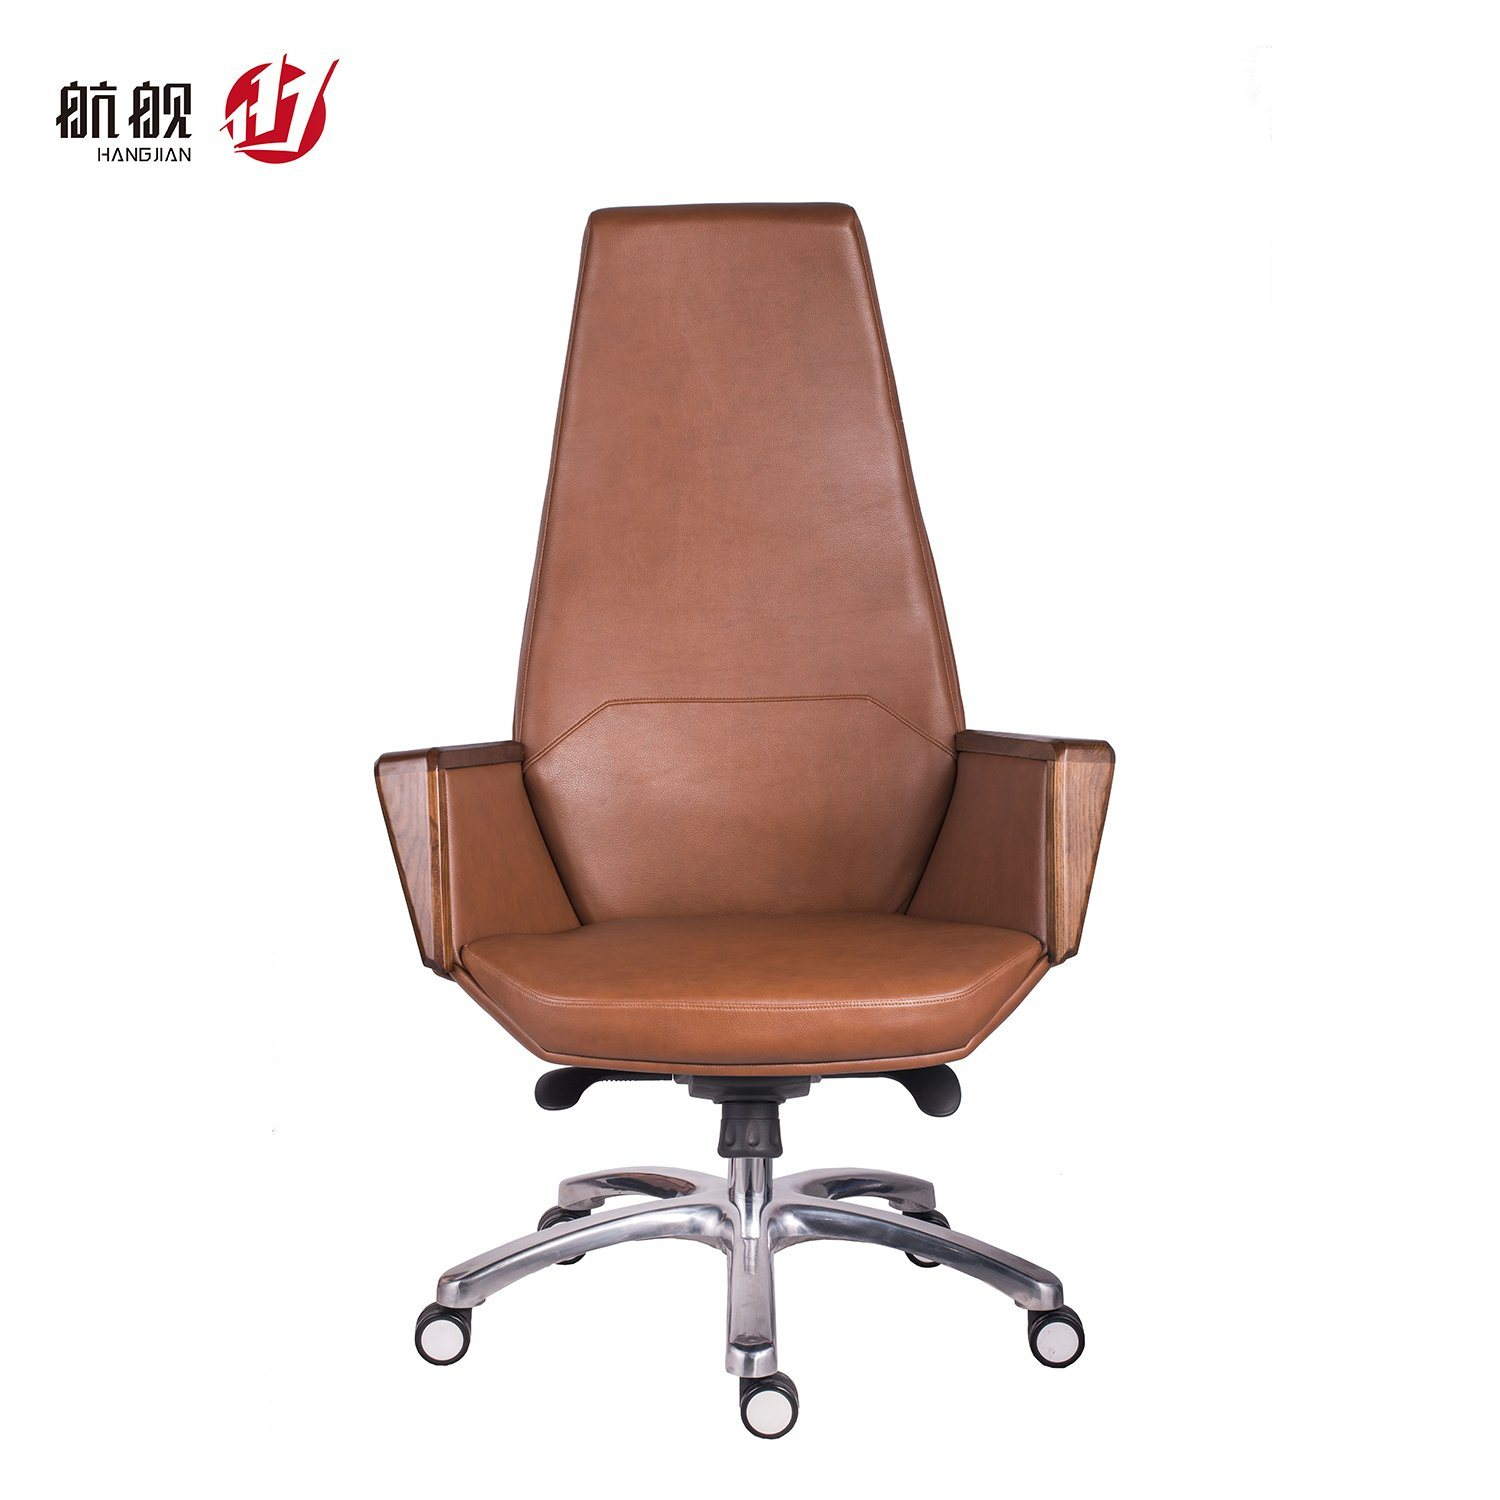 China Nordic Computer Office Chair Rotary Seat Swivel Chair For Home Office China Europe Style Chair Armrest Chair